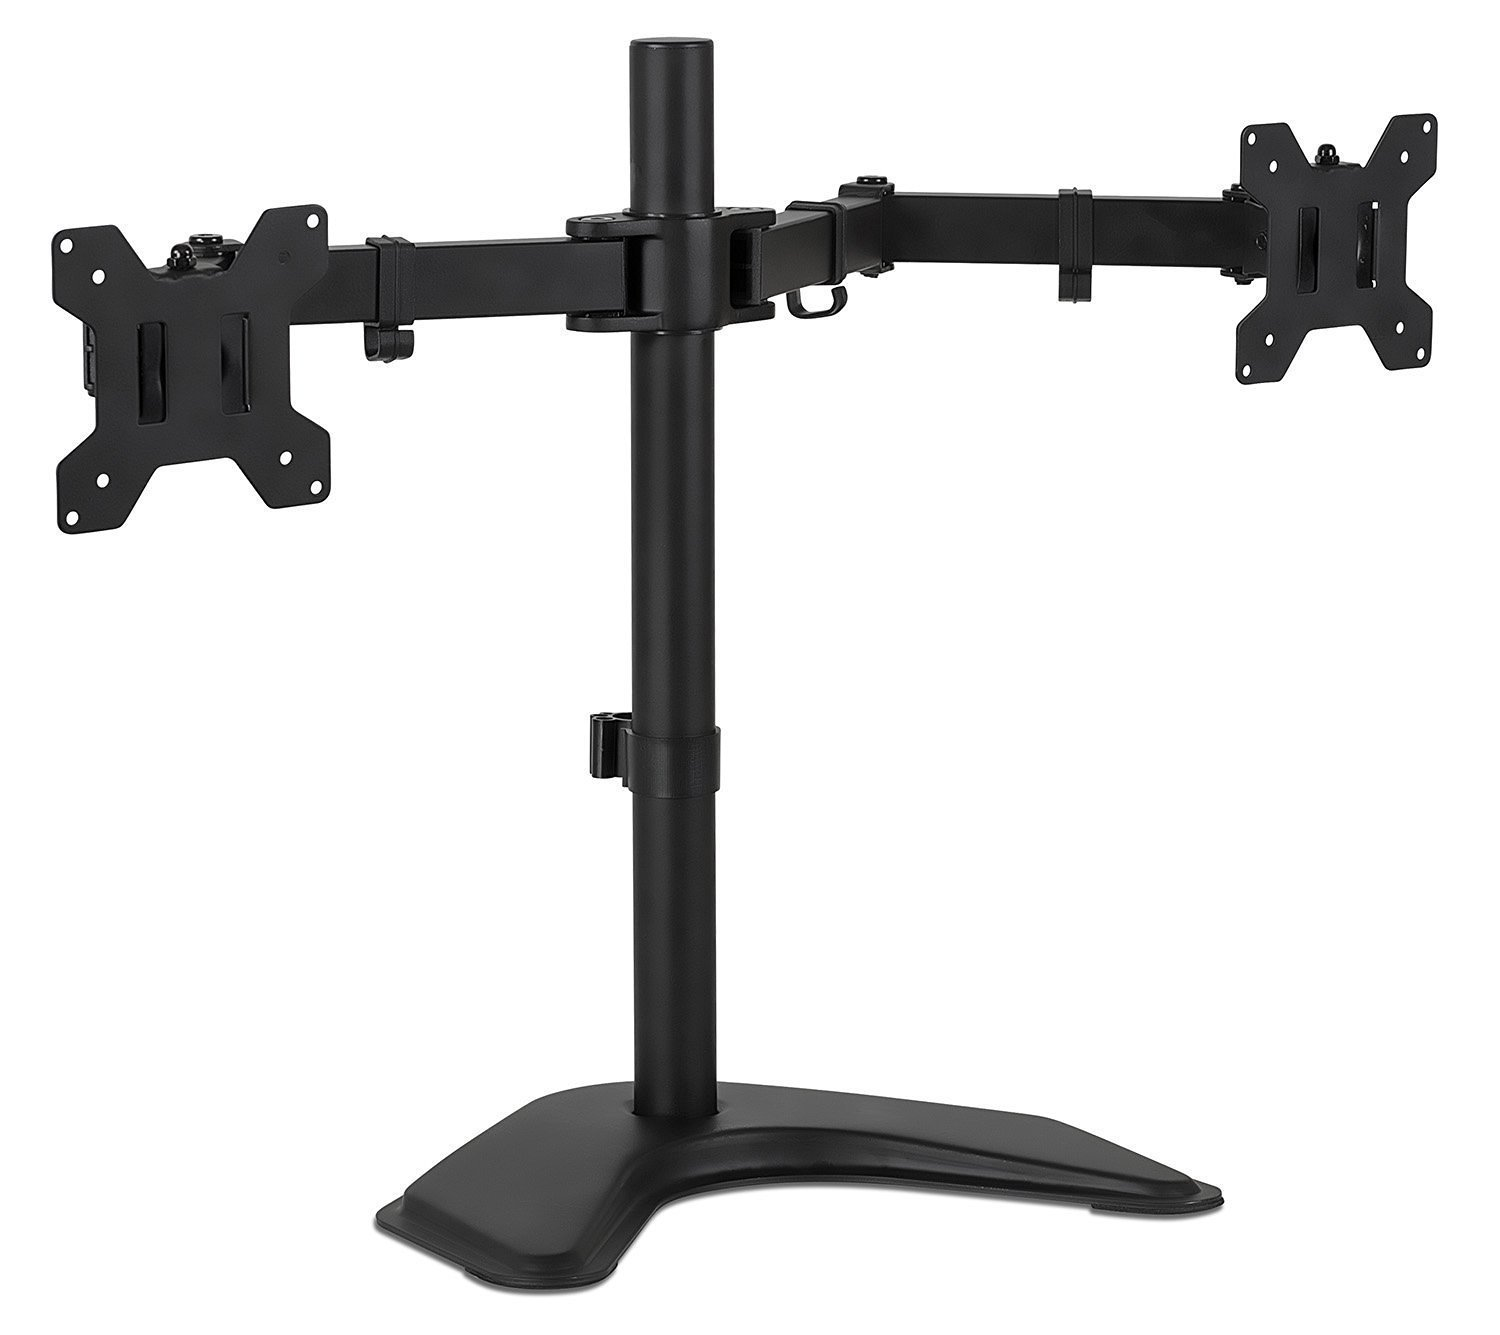 Mount-It! Dual Monitor Desk Stand LCD Mount, Adjustable, Free Standing Two Computer LED Displays Stand 20, 23, 24, 27 Inch Screen Sizes, Black (MI-2781)